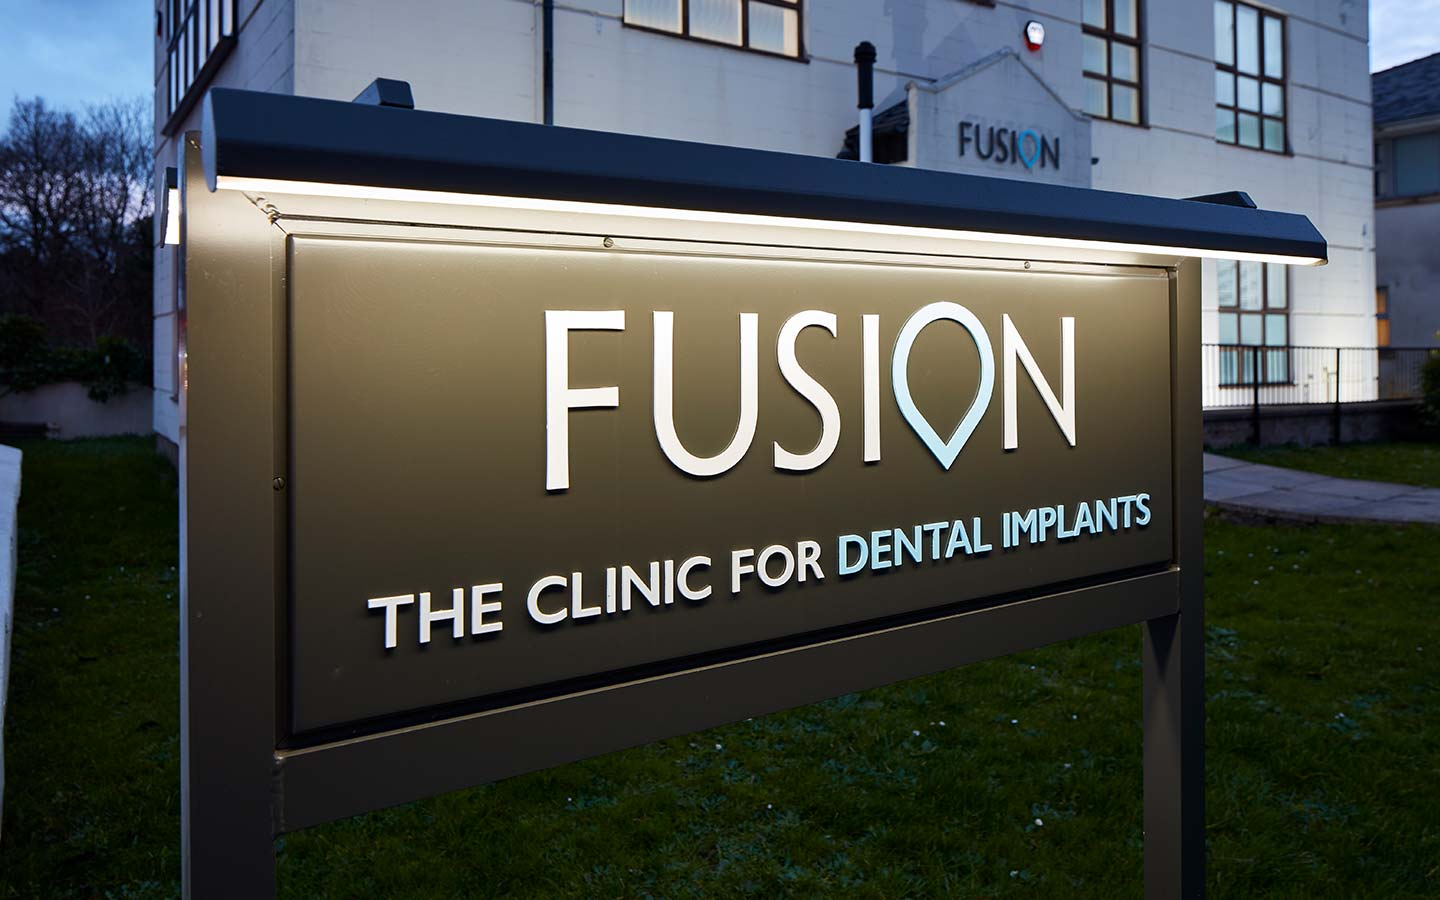 Fusion sign lit up at night